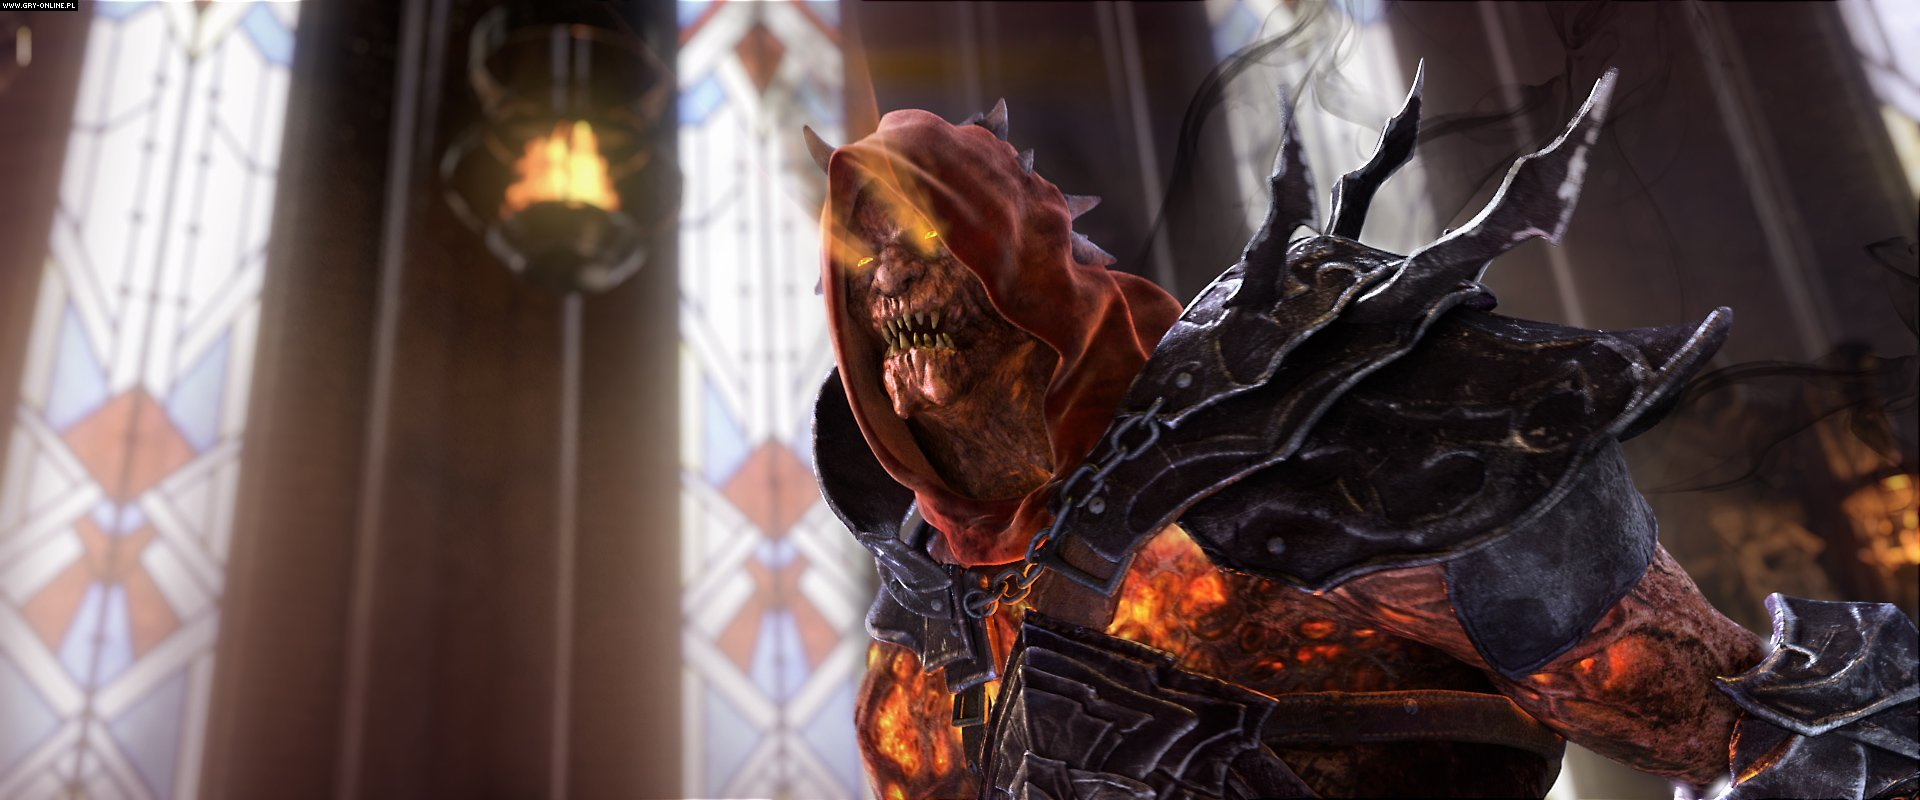 Free Download Video Game Lords Of The Fallen Wallpaper 1920x800